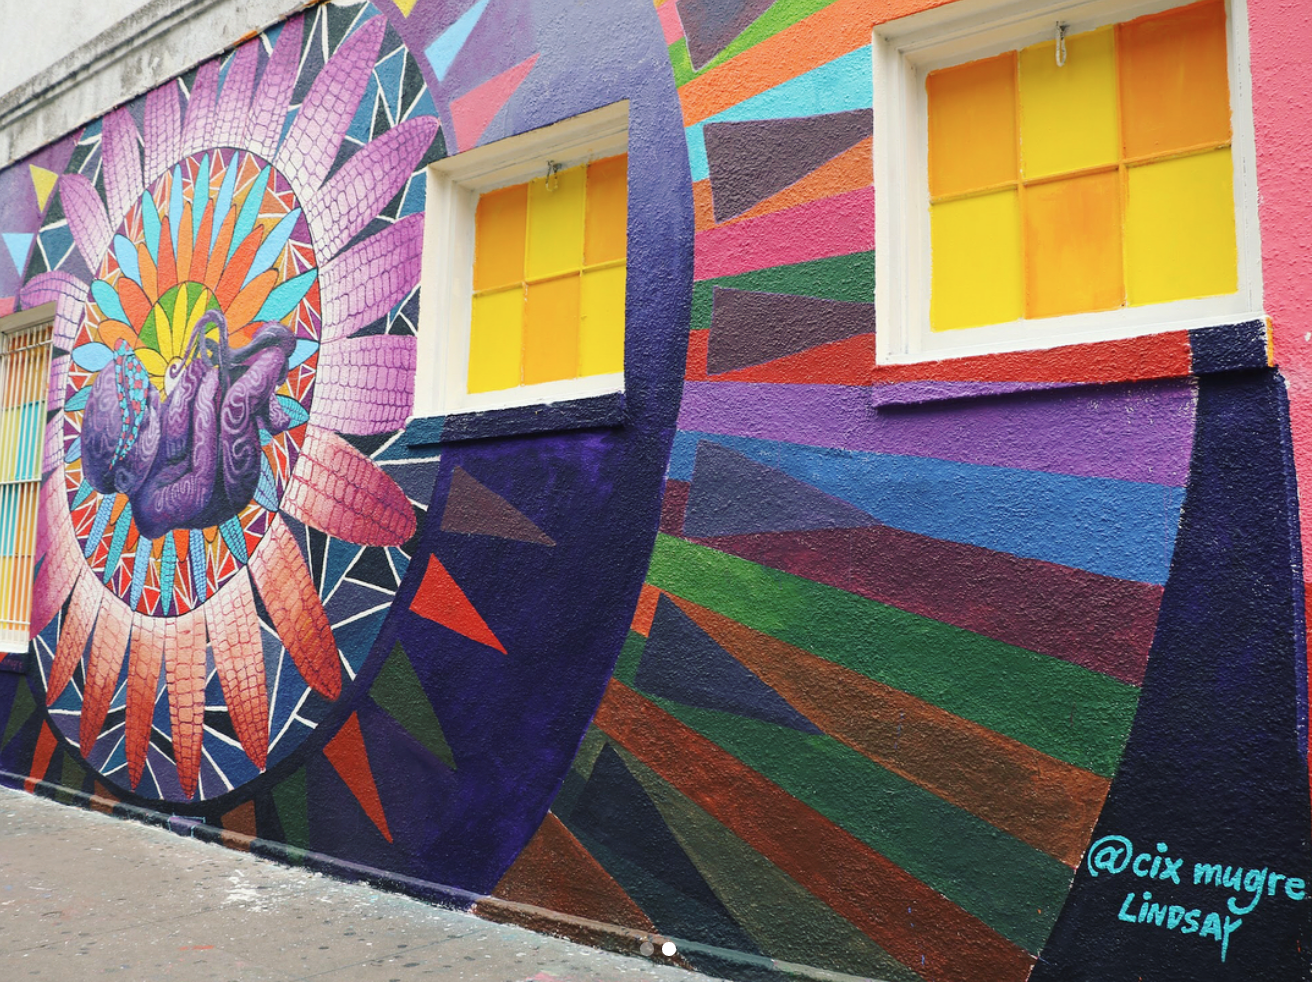 Mural Artists Complete Austin Artwork on Fifth Street and Congress - Downtown